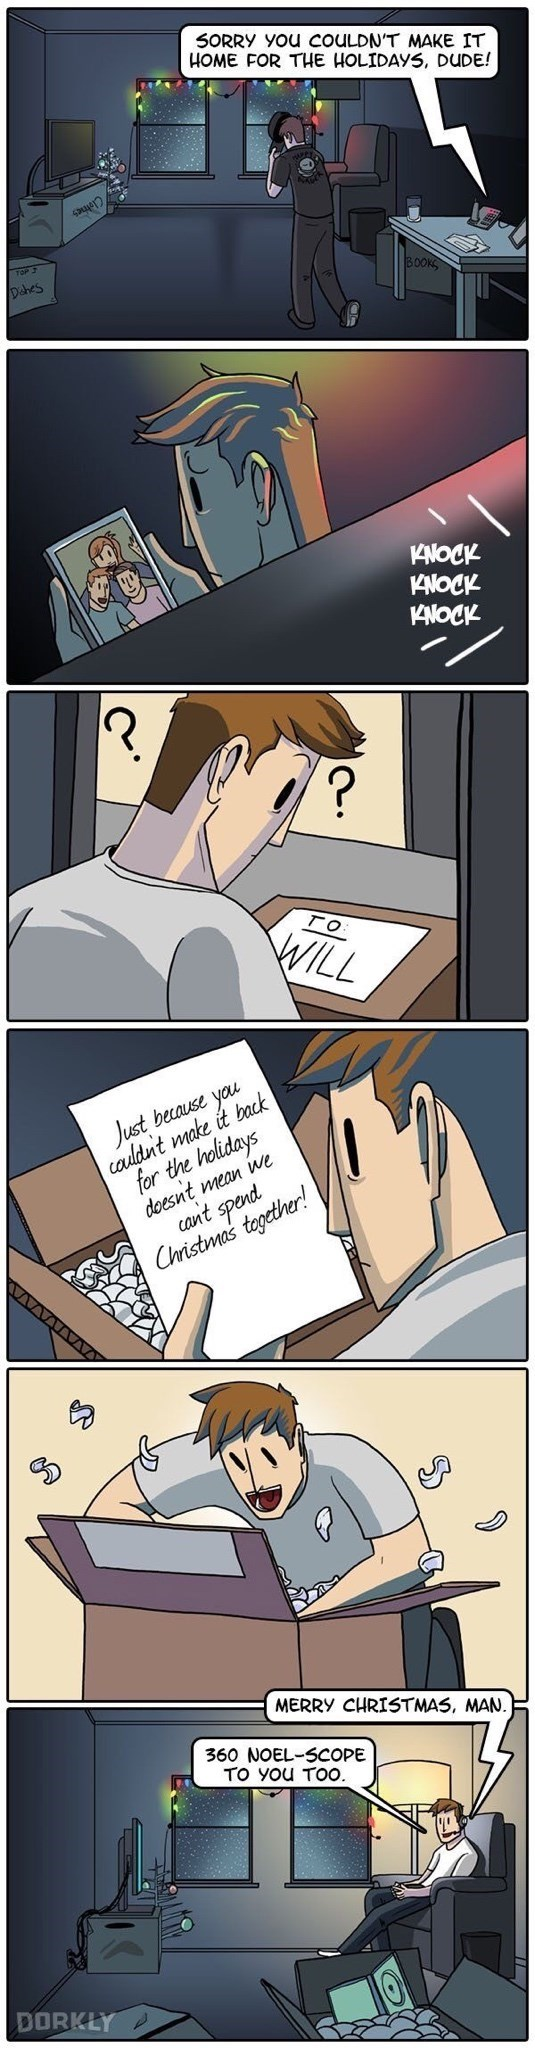 Cartoon - SORRY You COULDN'T MAKE IT HOME FOR THE HOLIDAYS, DUDE! 30OKS Dahes 1KNOCK KNOCK 1KNOCK ? TO WILL cadldnt make it back for the helidays doesnt mean we cant spend Just because you Christmas together! AAUAVAVA MERRY CHRISTMAS, MAN. 360 NOEL-SCOPE TO YOu TOO. DORKLY